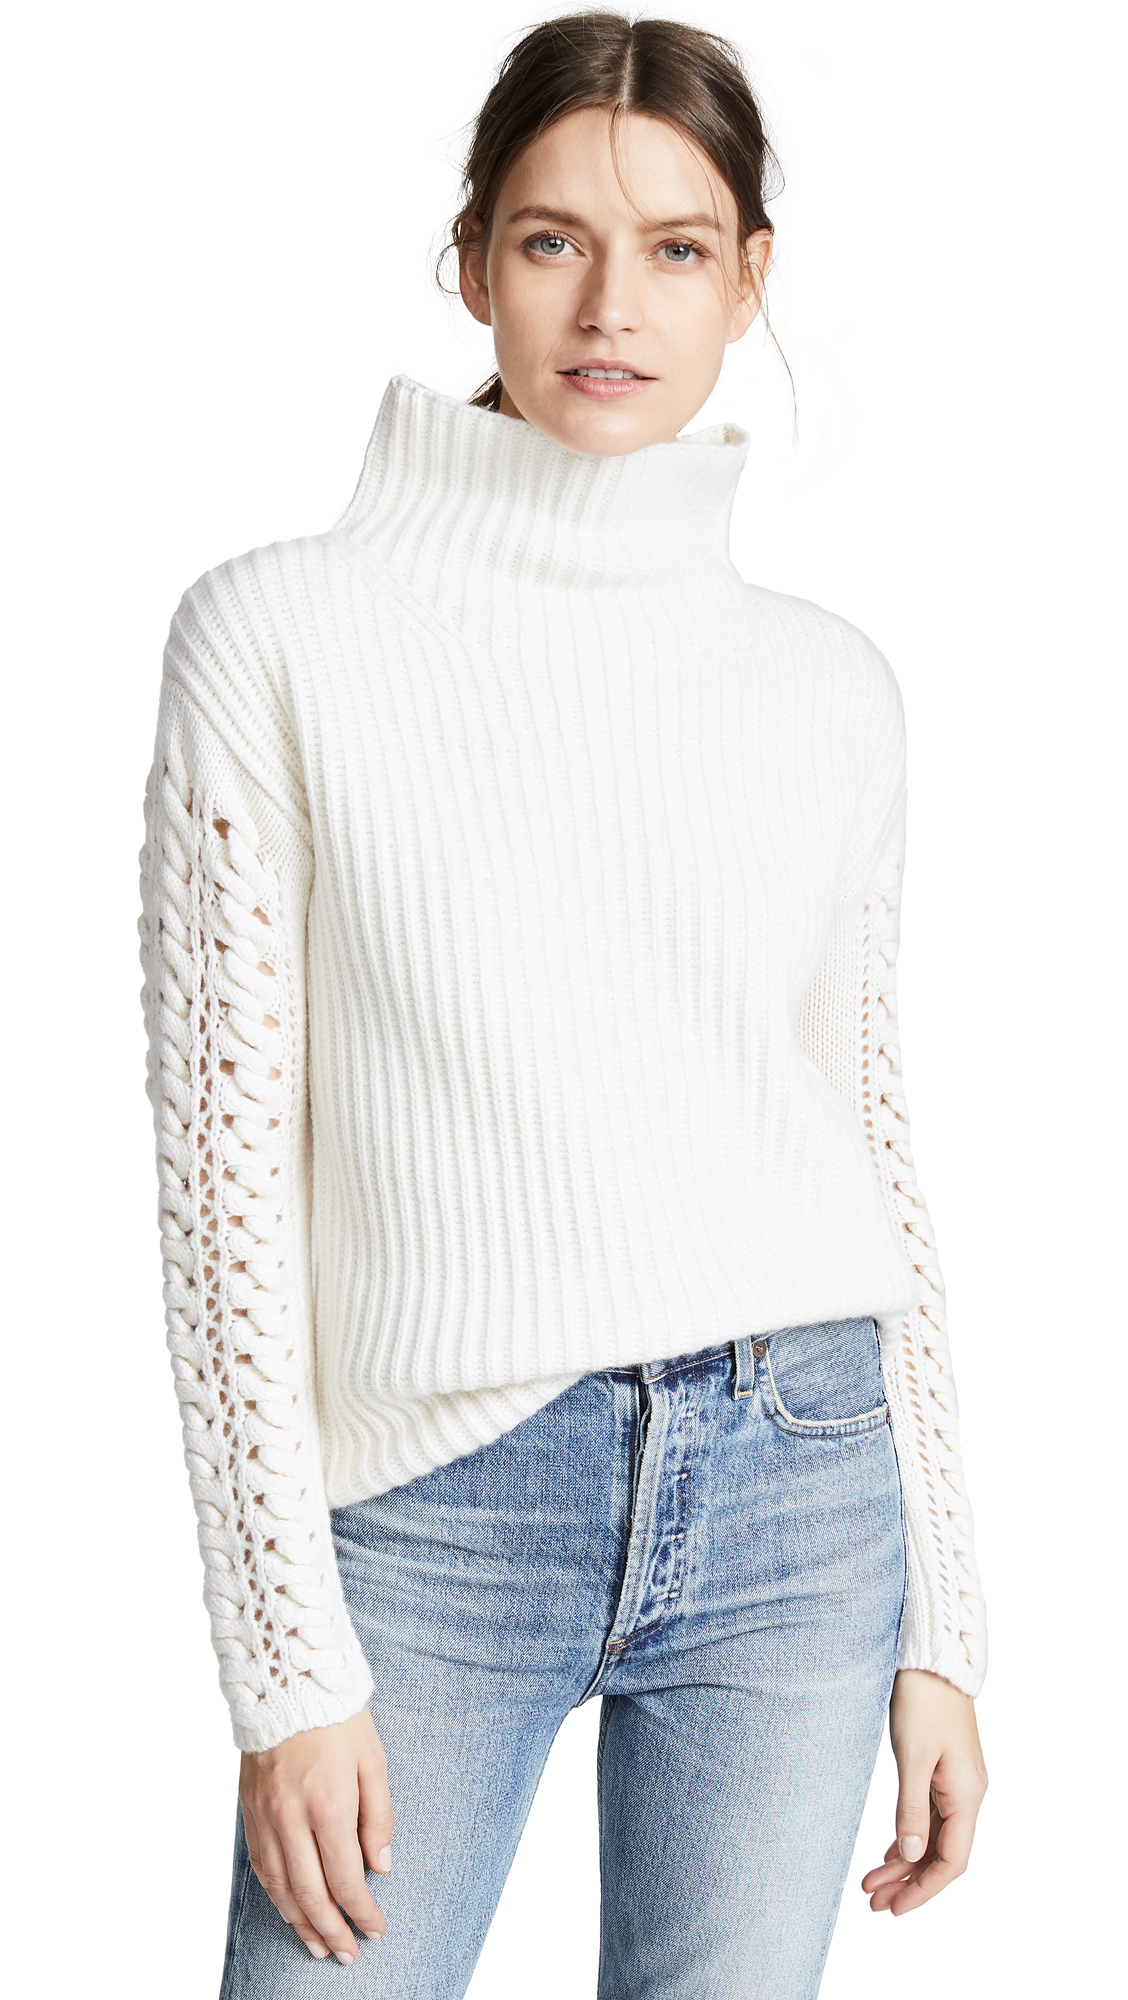 TSE CASHMERE Cashmere Turtleneck With Braided Cording Sleeves in Crème